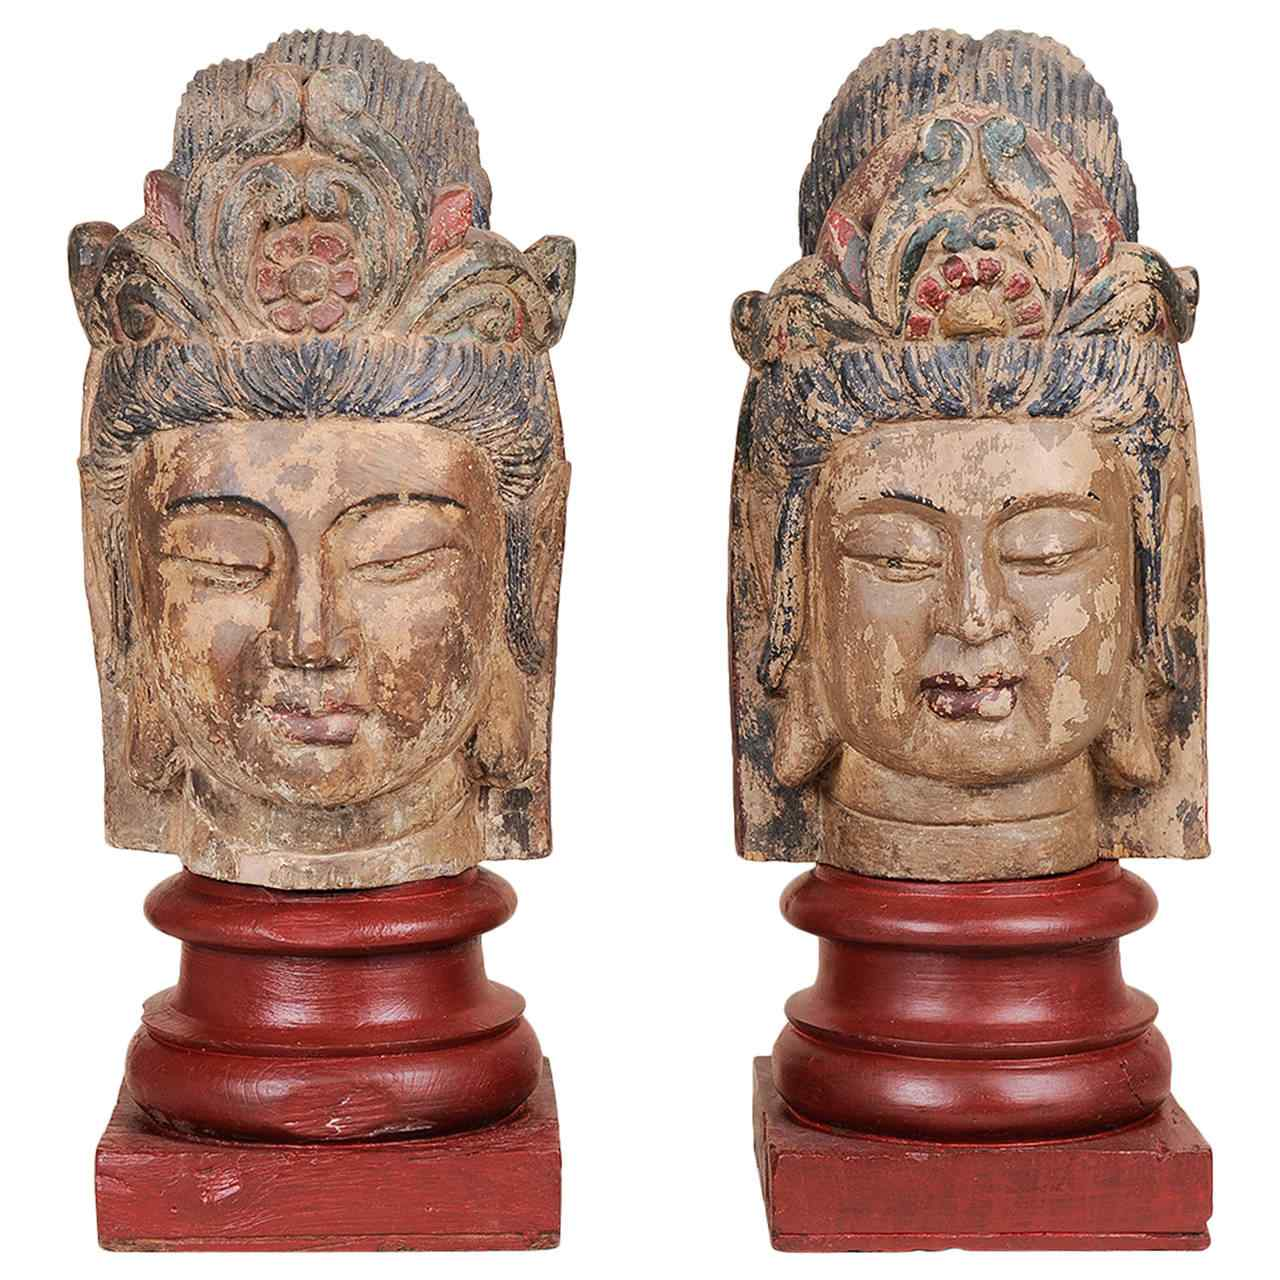 Pair of polychrome wooden sculptures